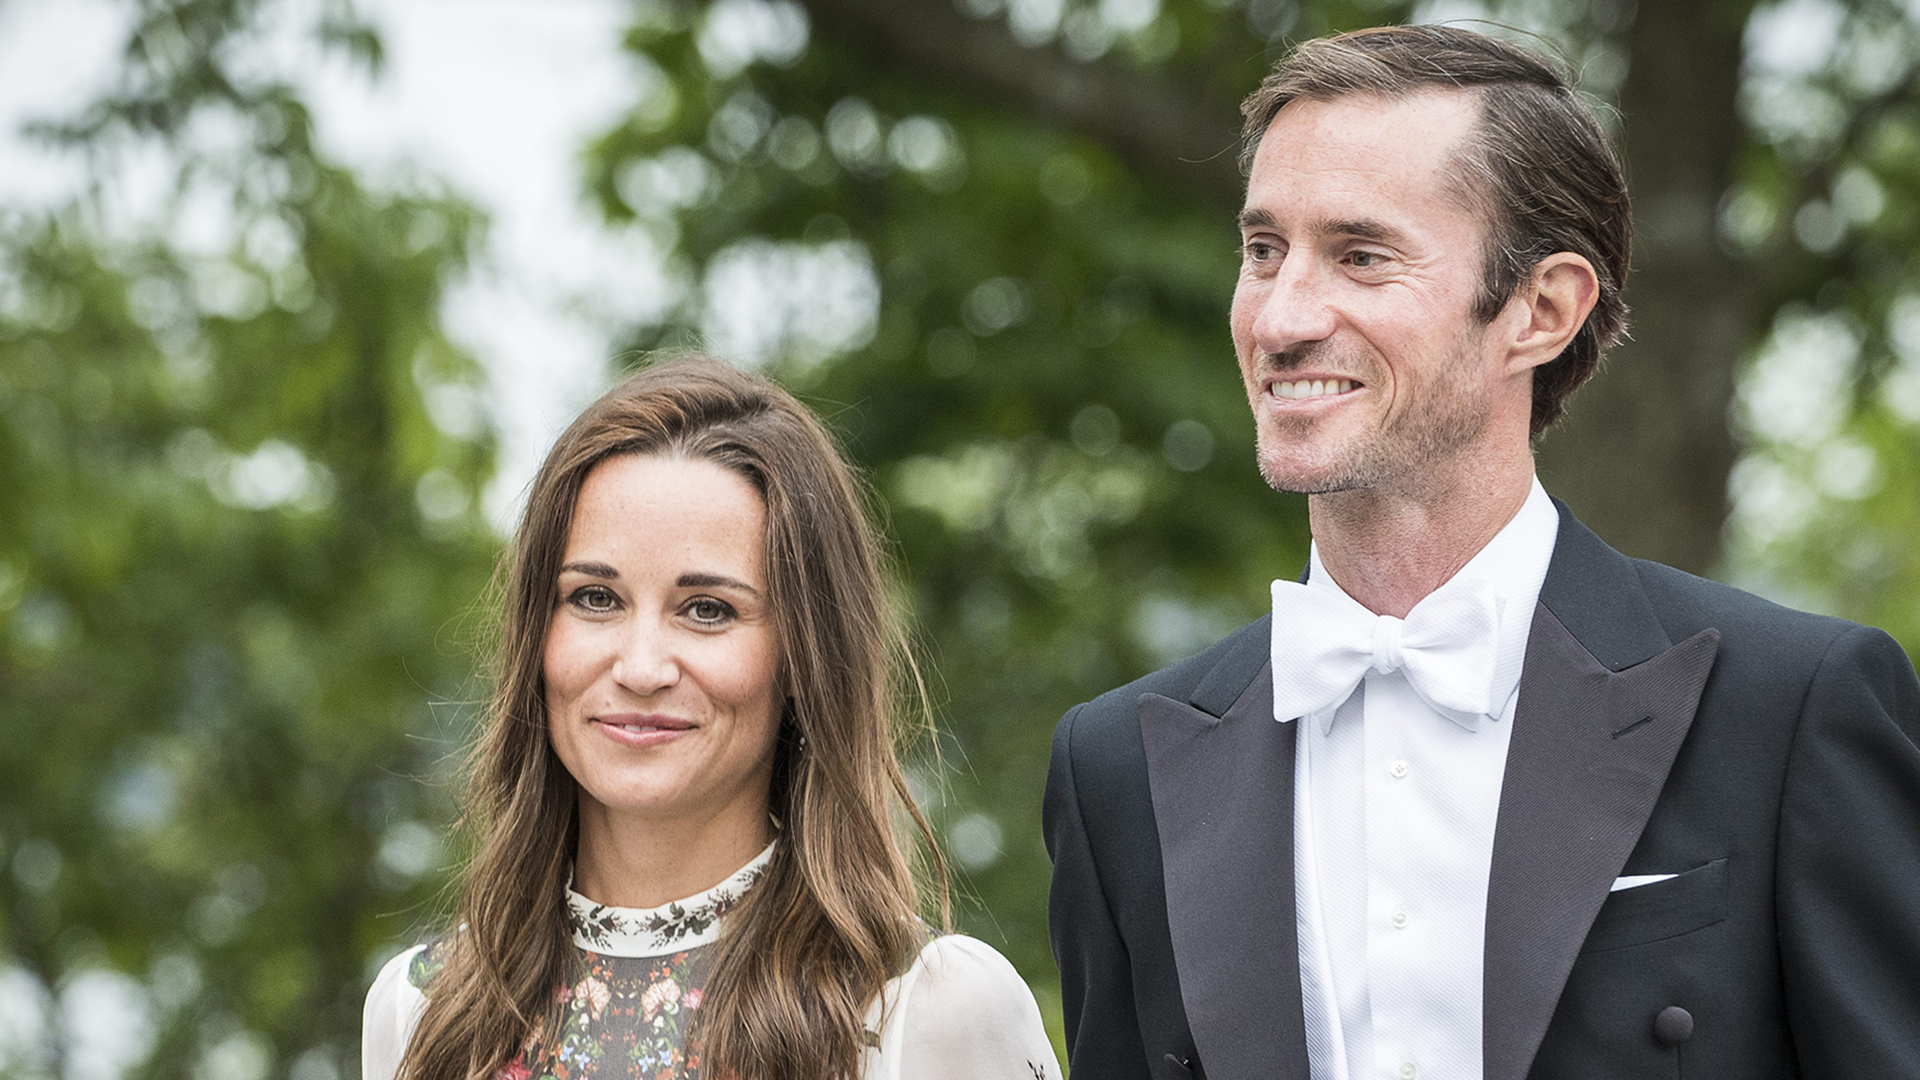 Pippa Middleton, James Matthews attend Stockholm wedding - photo#30